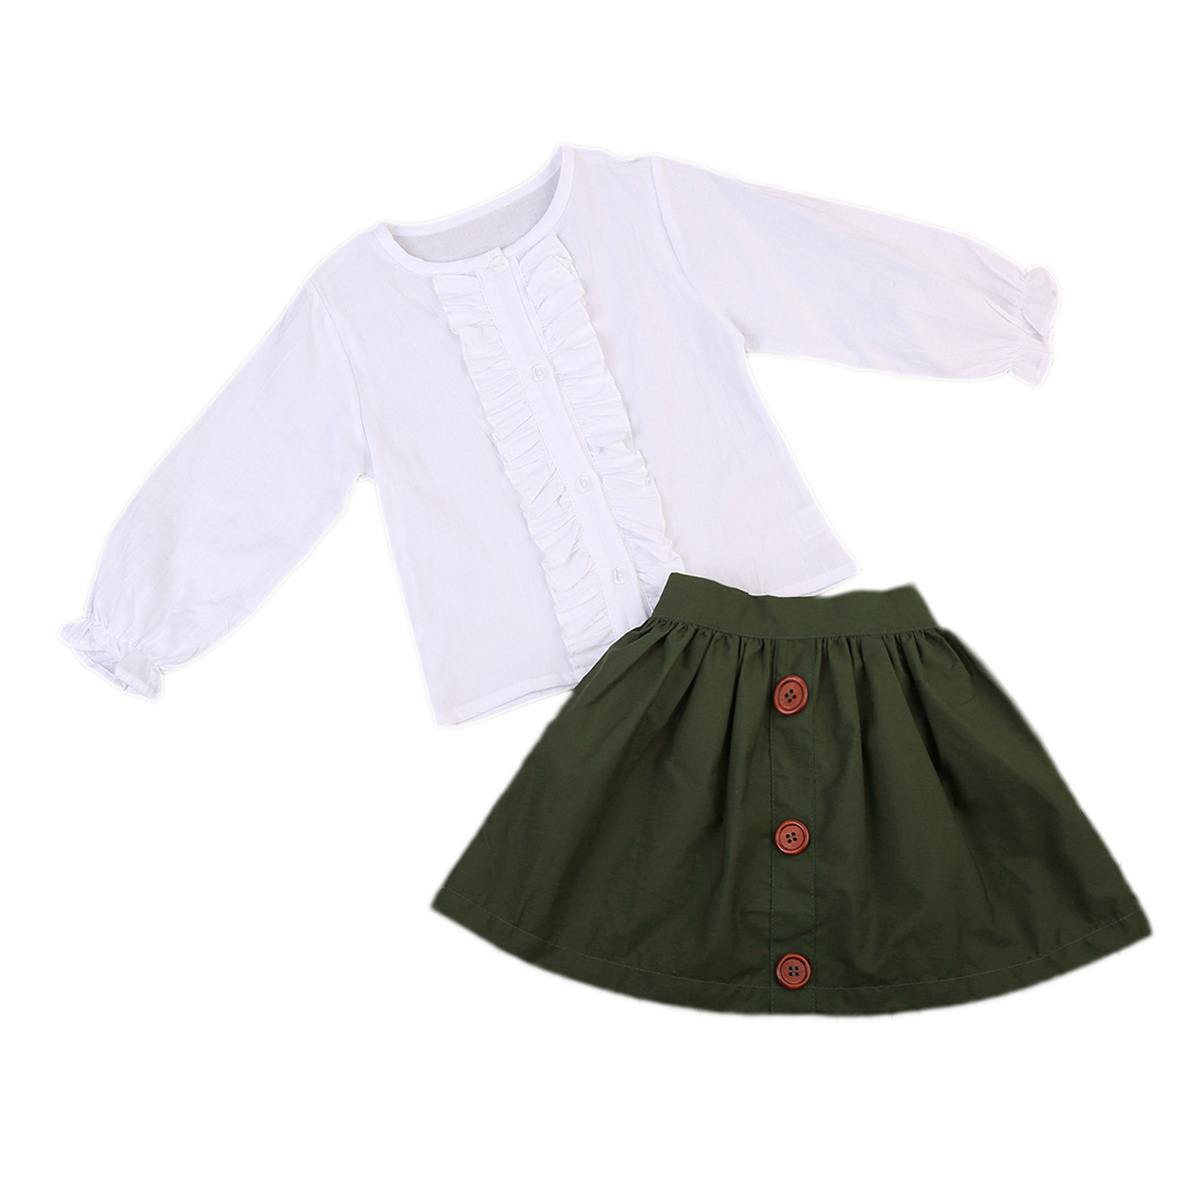 Linen Baby Clothes Uk